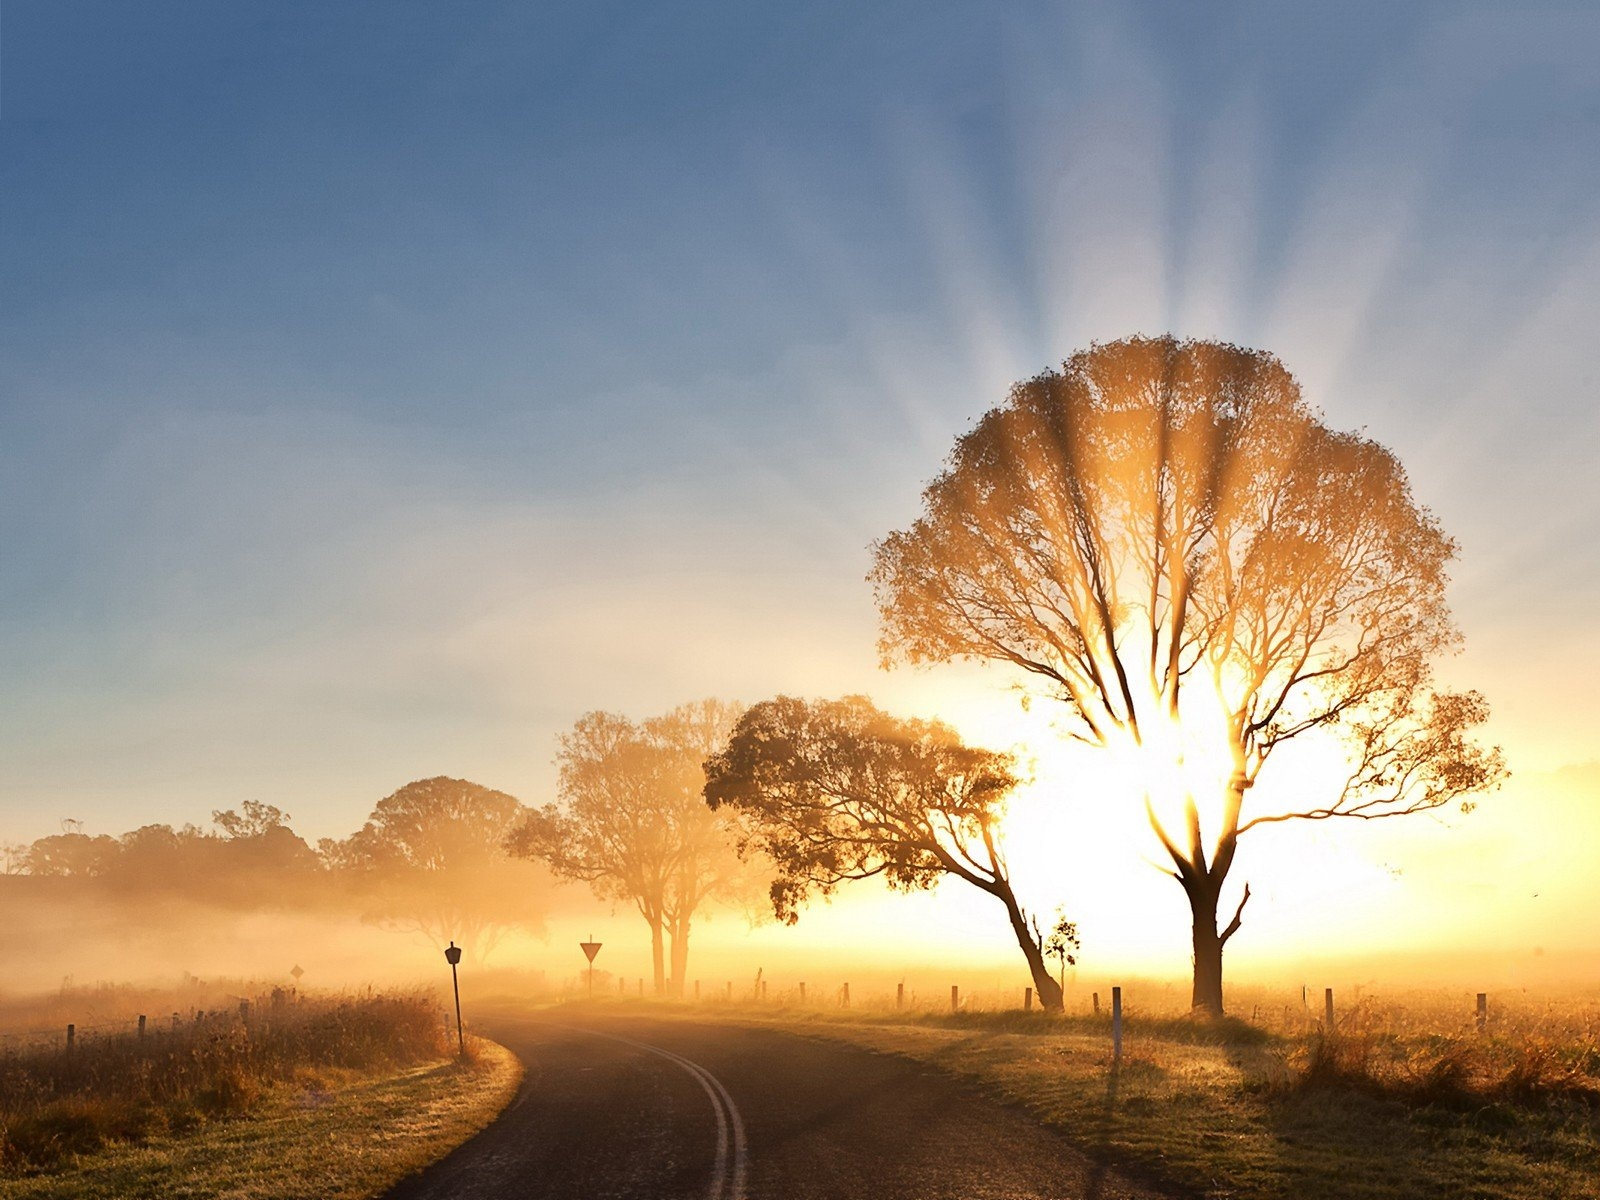 sunrise-road-tree.jpg